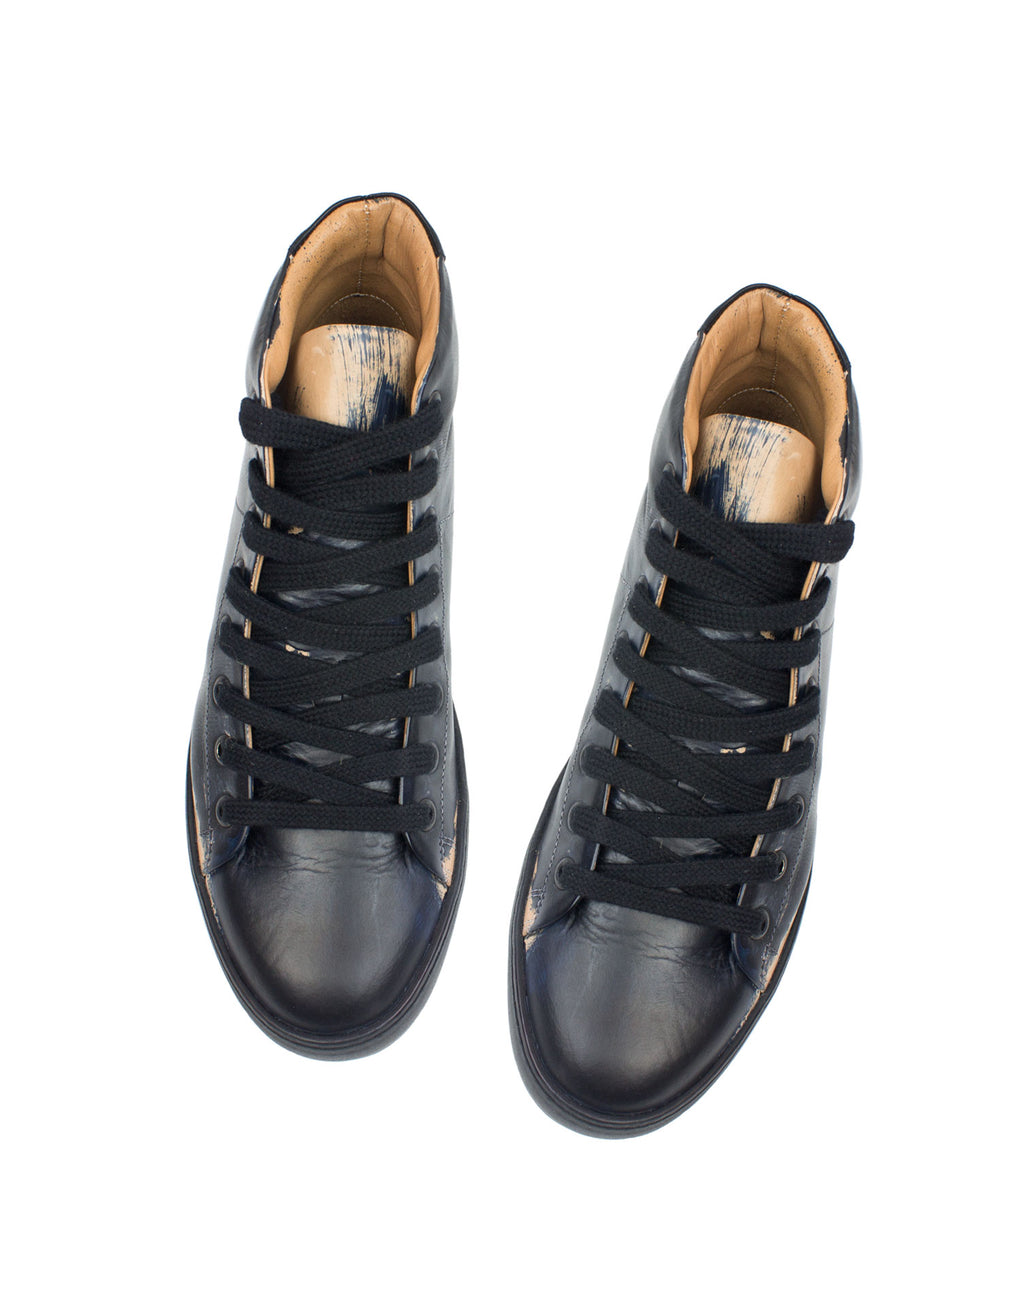 Designer hand painted sneaker by Georgina Goodman, a customised sneaker, painted in London on natural vegetable tanned leather with recycled soles and leather lining, comfy feet always with these one of kind trainers.